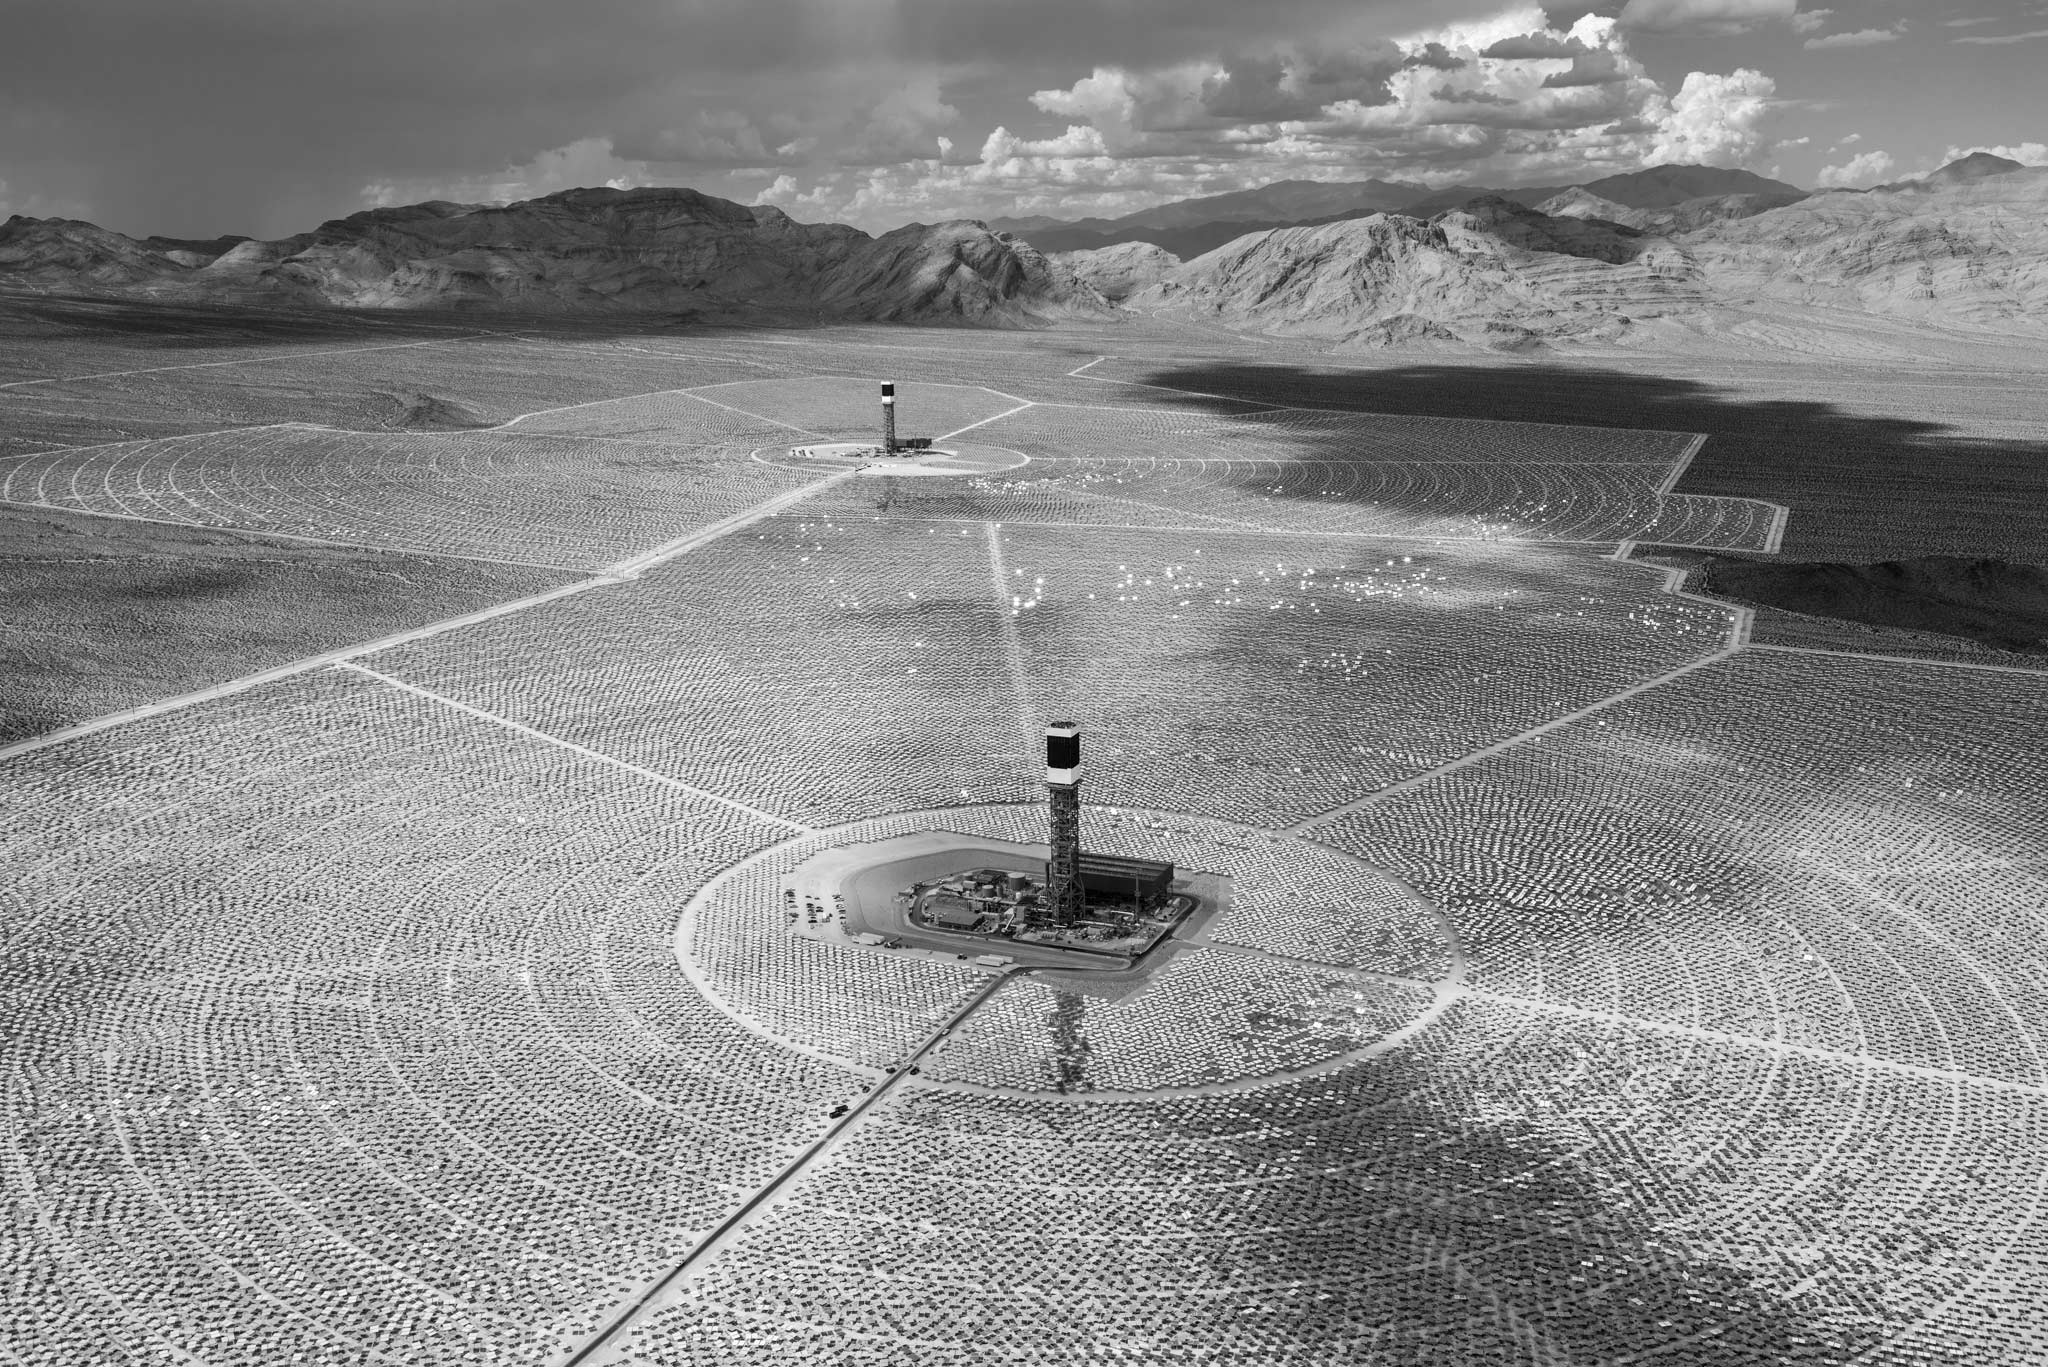 Jamey Stillings Assignment Photography On The Ground And In Ivanpah Solar Power Facility Electricity Generation System Concentrated Thermal Csp Doe Energy Google Green Interstate 15 Isegs Electric Generating